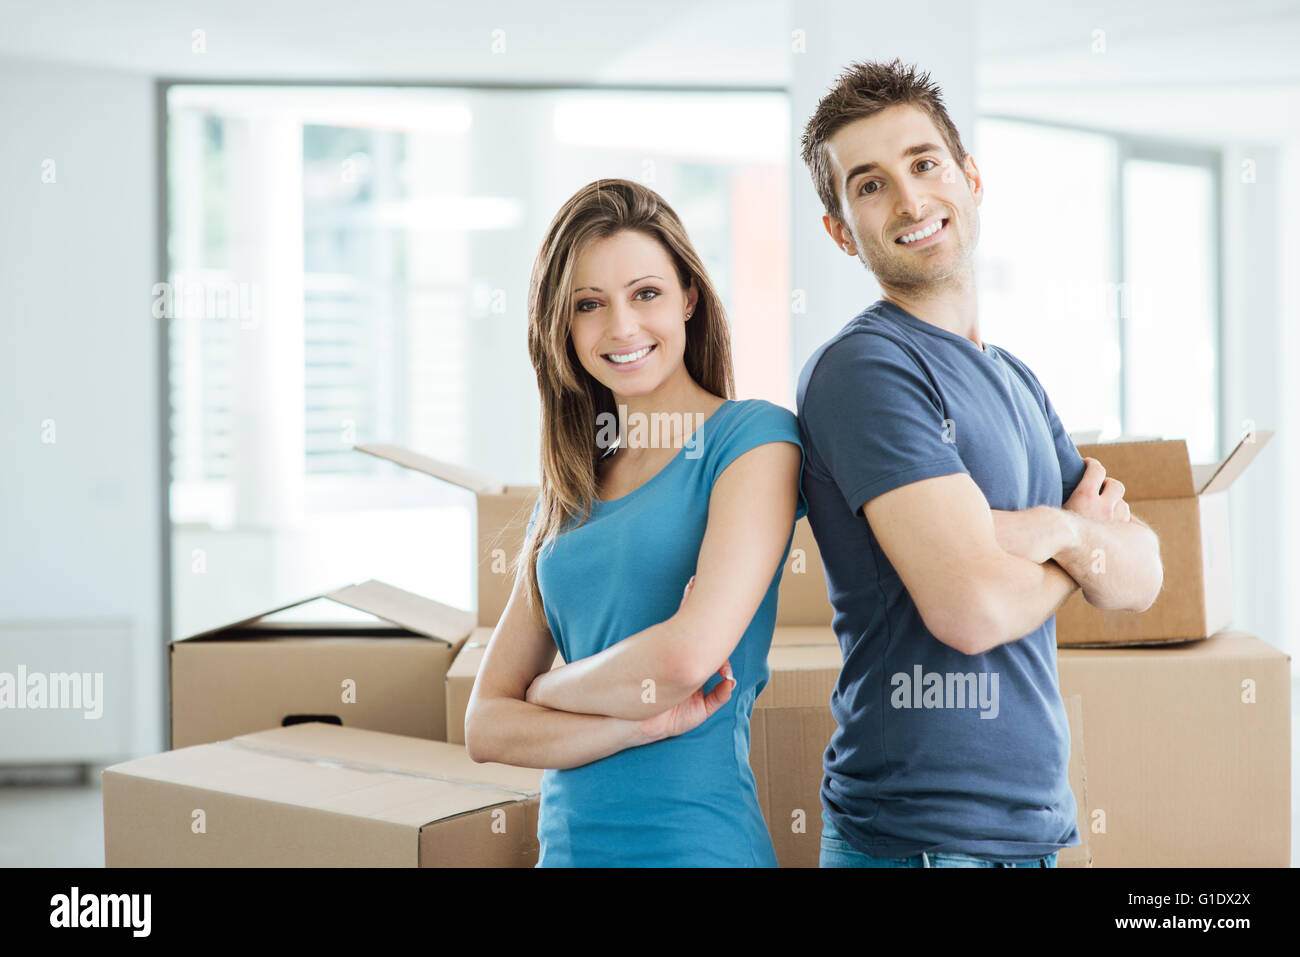 Smiling loving couple posing in their new house back to back surrounded by carton boxes - Stock Image